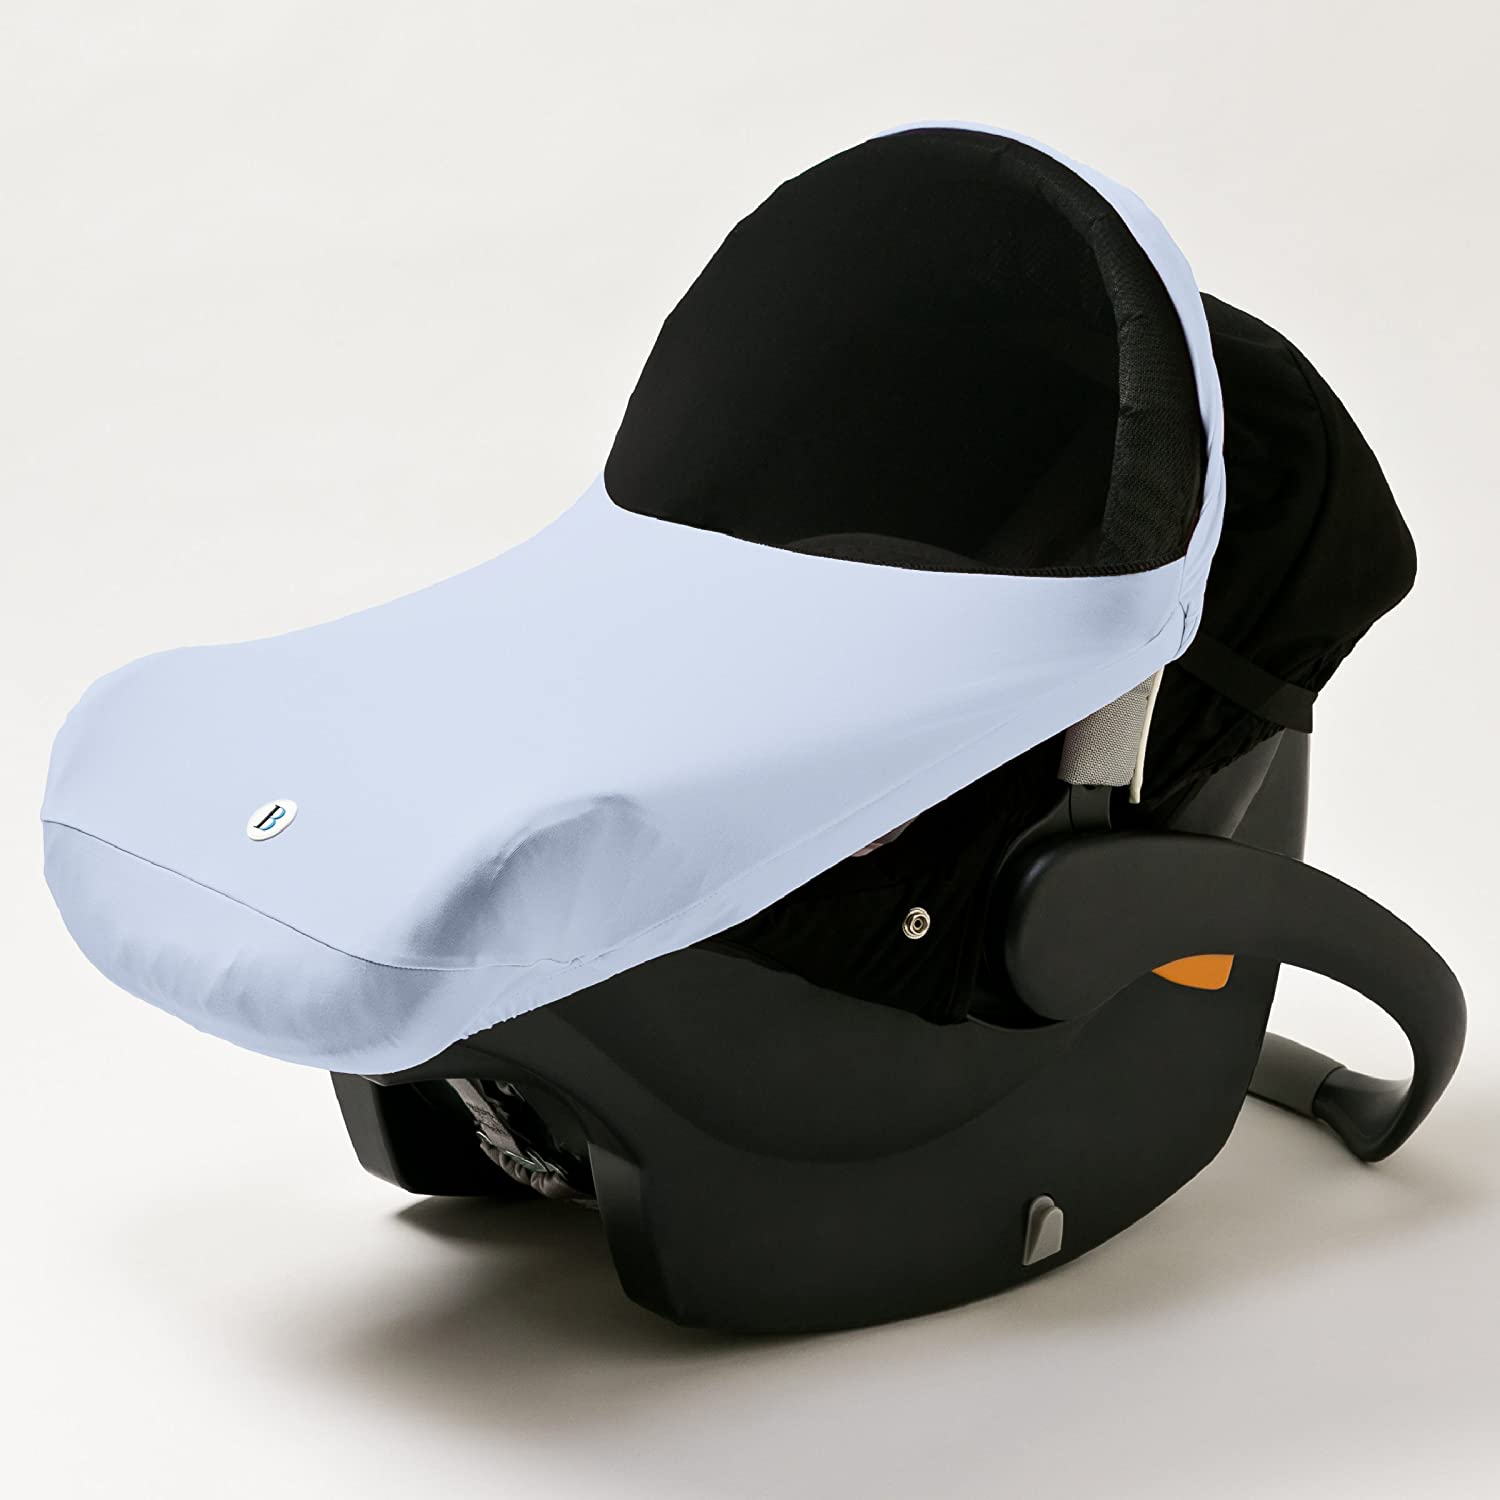 Amazon.com  Imagine Baby Car Seat Canopy Shade - Blue  Child Safety Car Seats  Baby & Amazon.com : Imagine Baby Car Seat Canopy Shade - Blue : Child ...